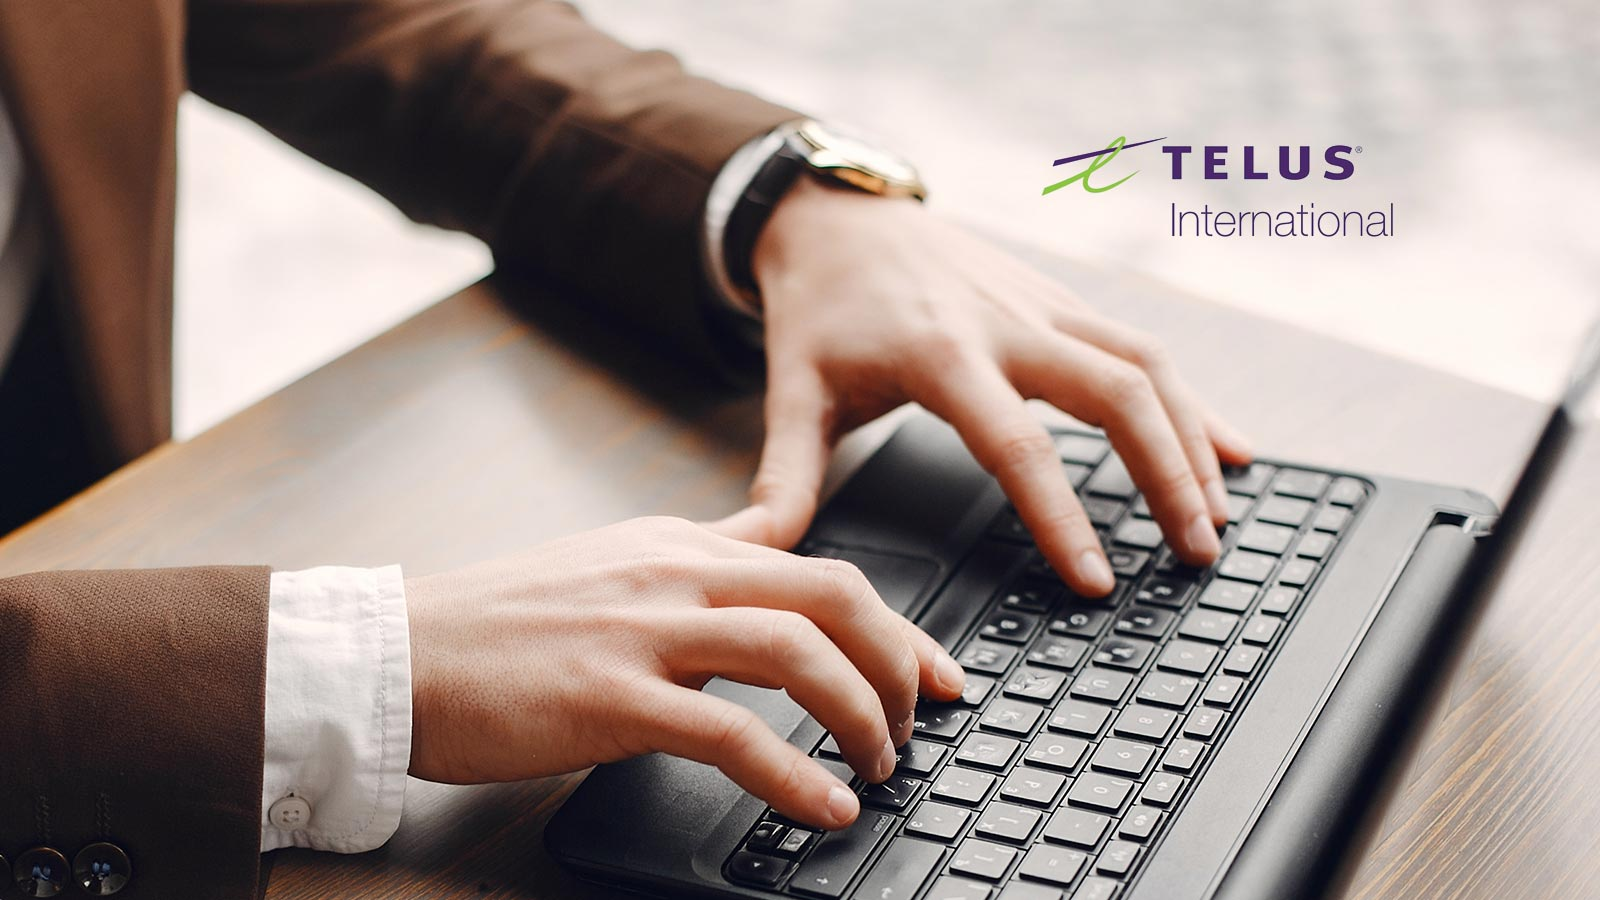 TELUS International Named a Leader on the 2021 Everest Group Customer Experience Management (CXM) Services PEAK Matrix for a Third Consecutive Year